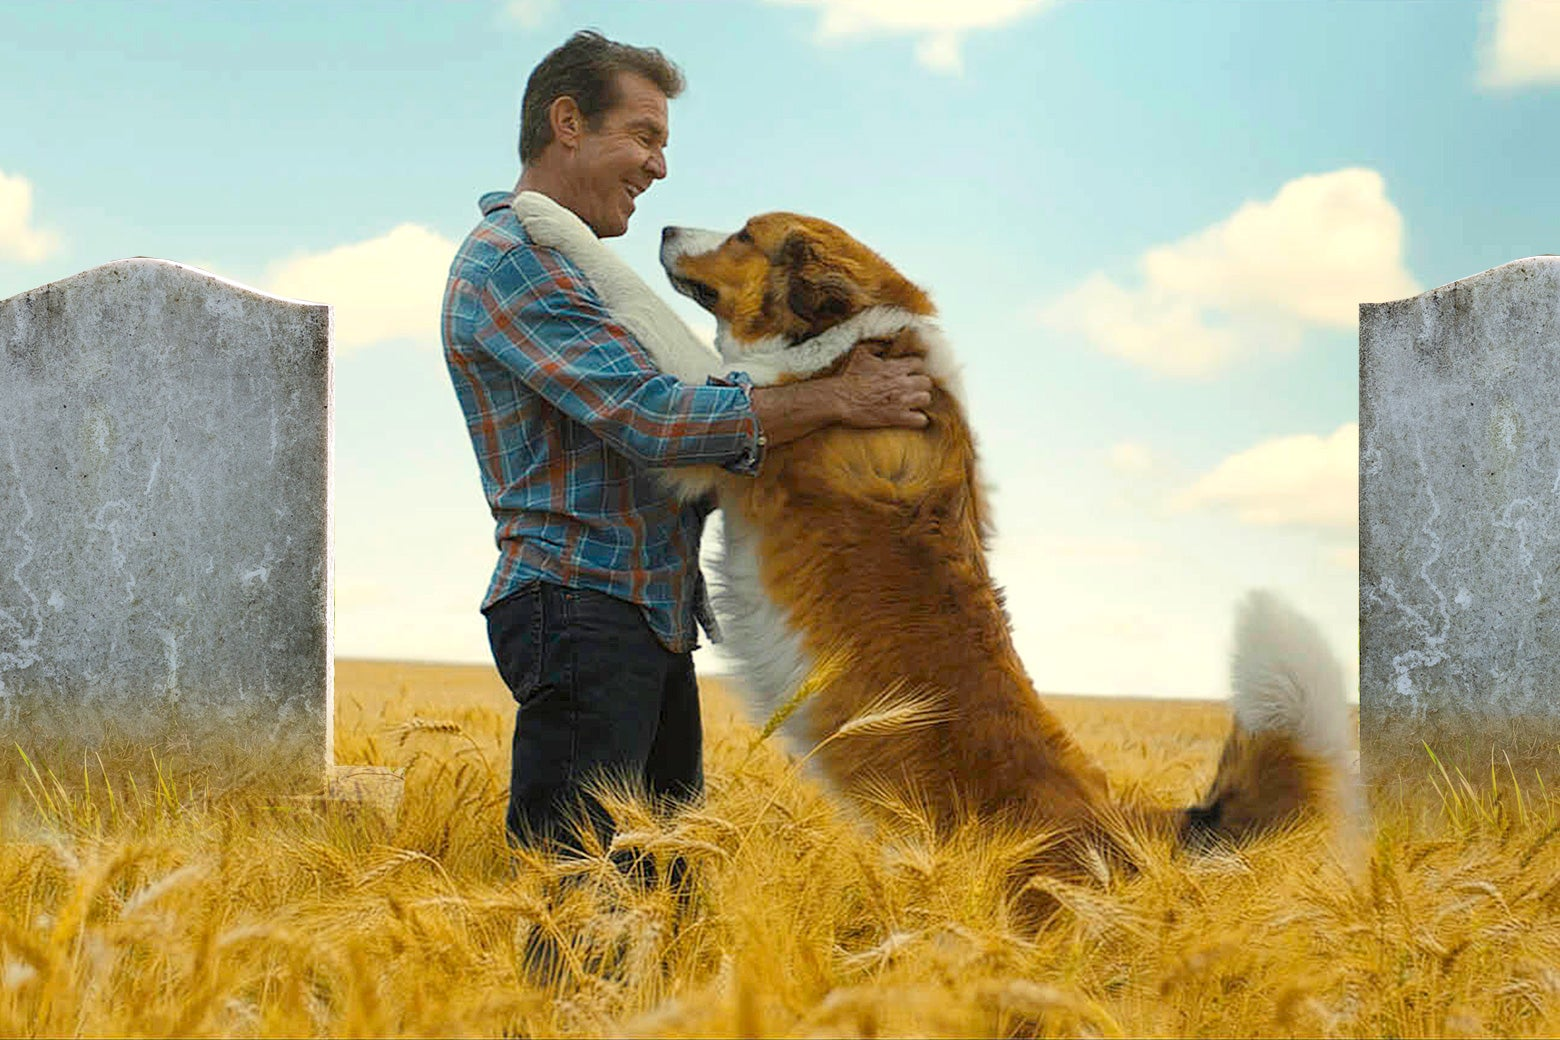 A dog stands up with his paws on Dennis Quaid's shoulders in a field that contains gravestones.